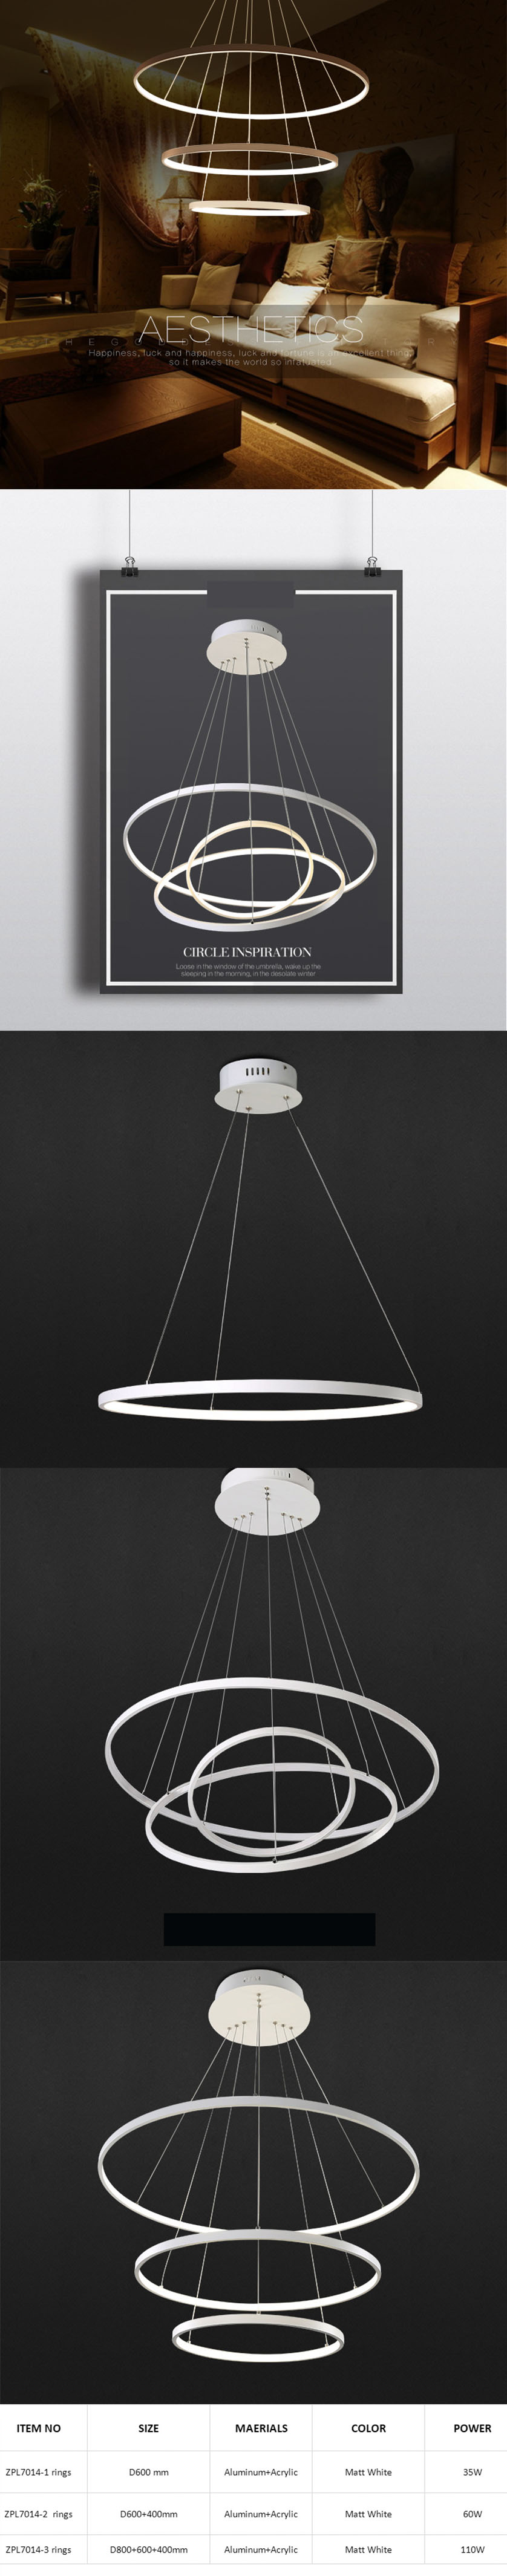 circular ring pendant light